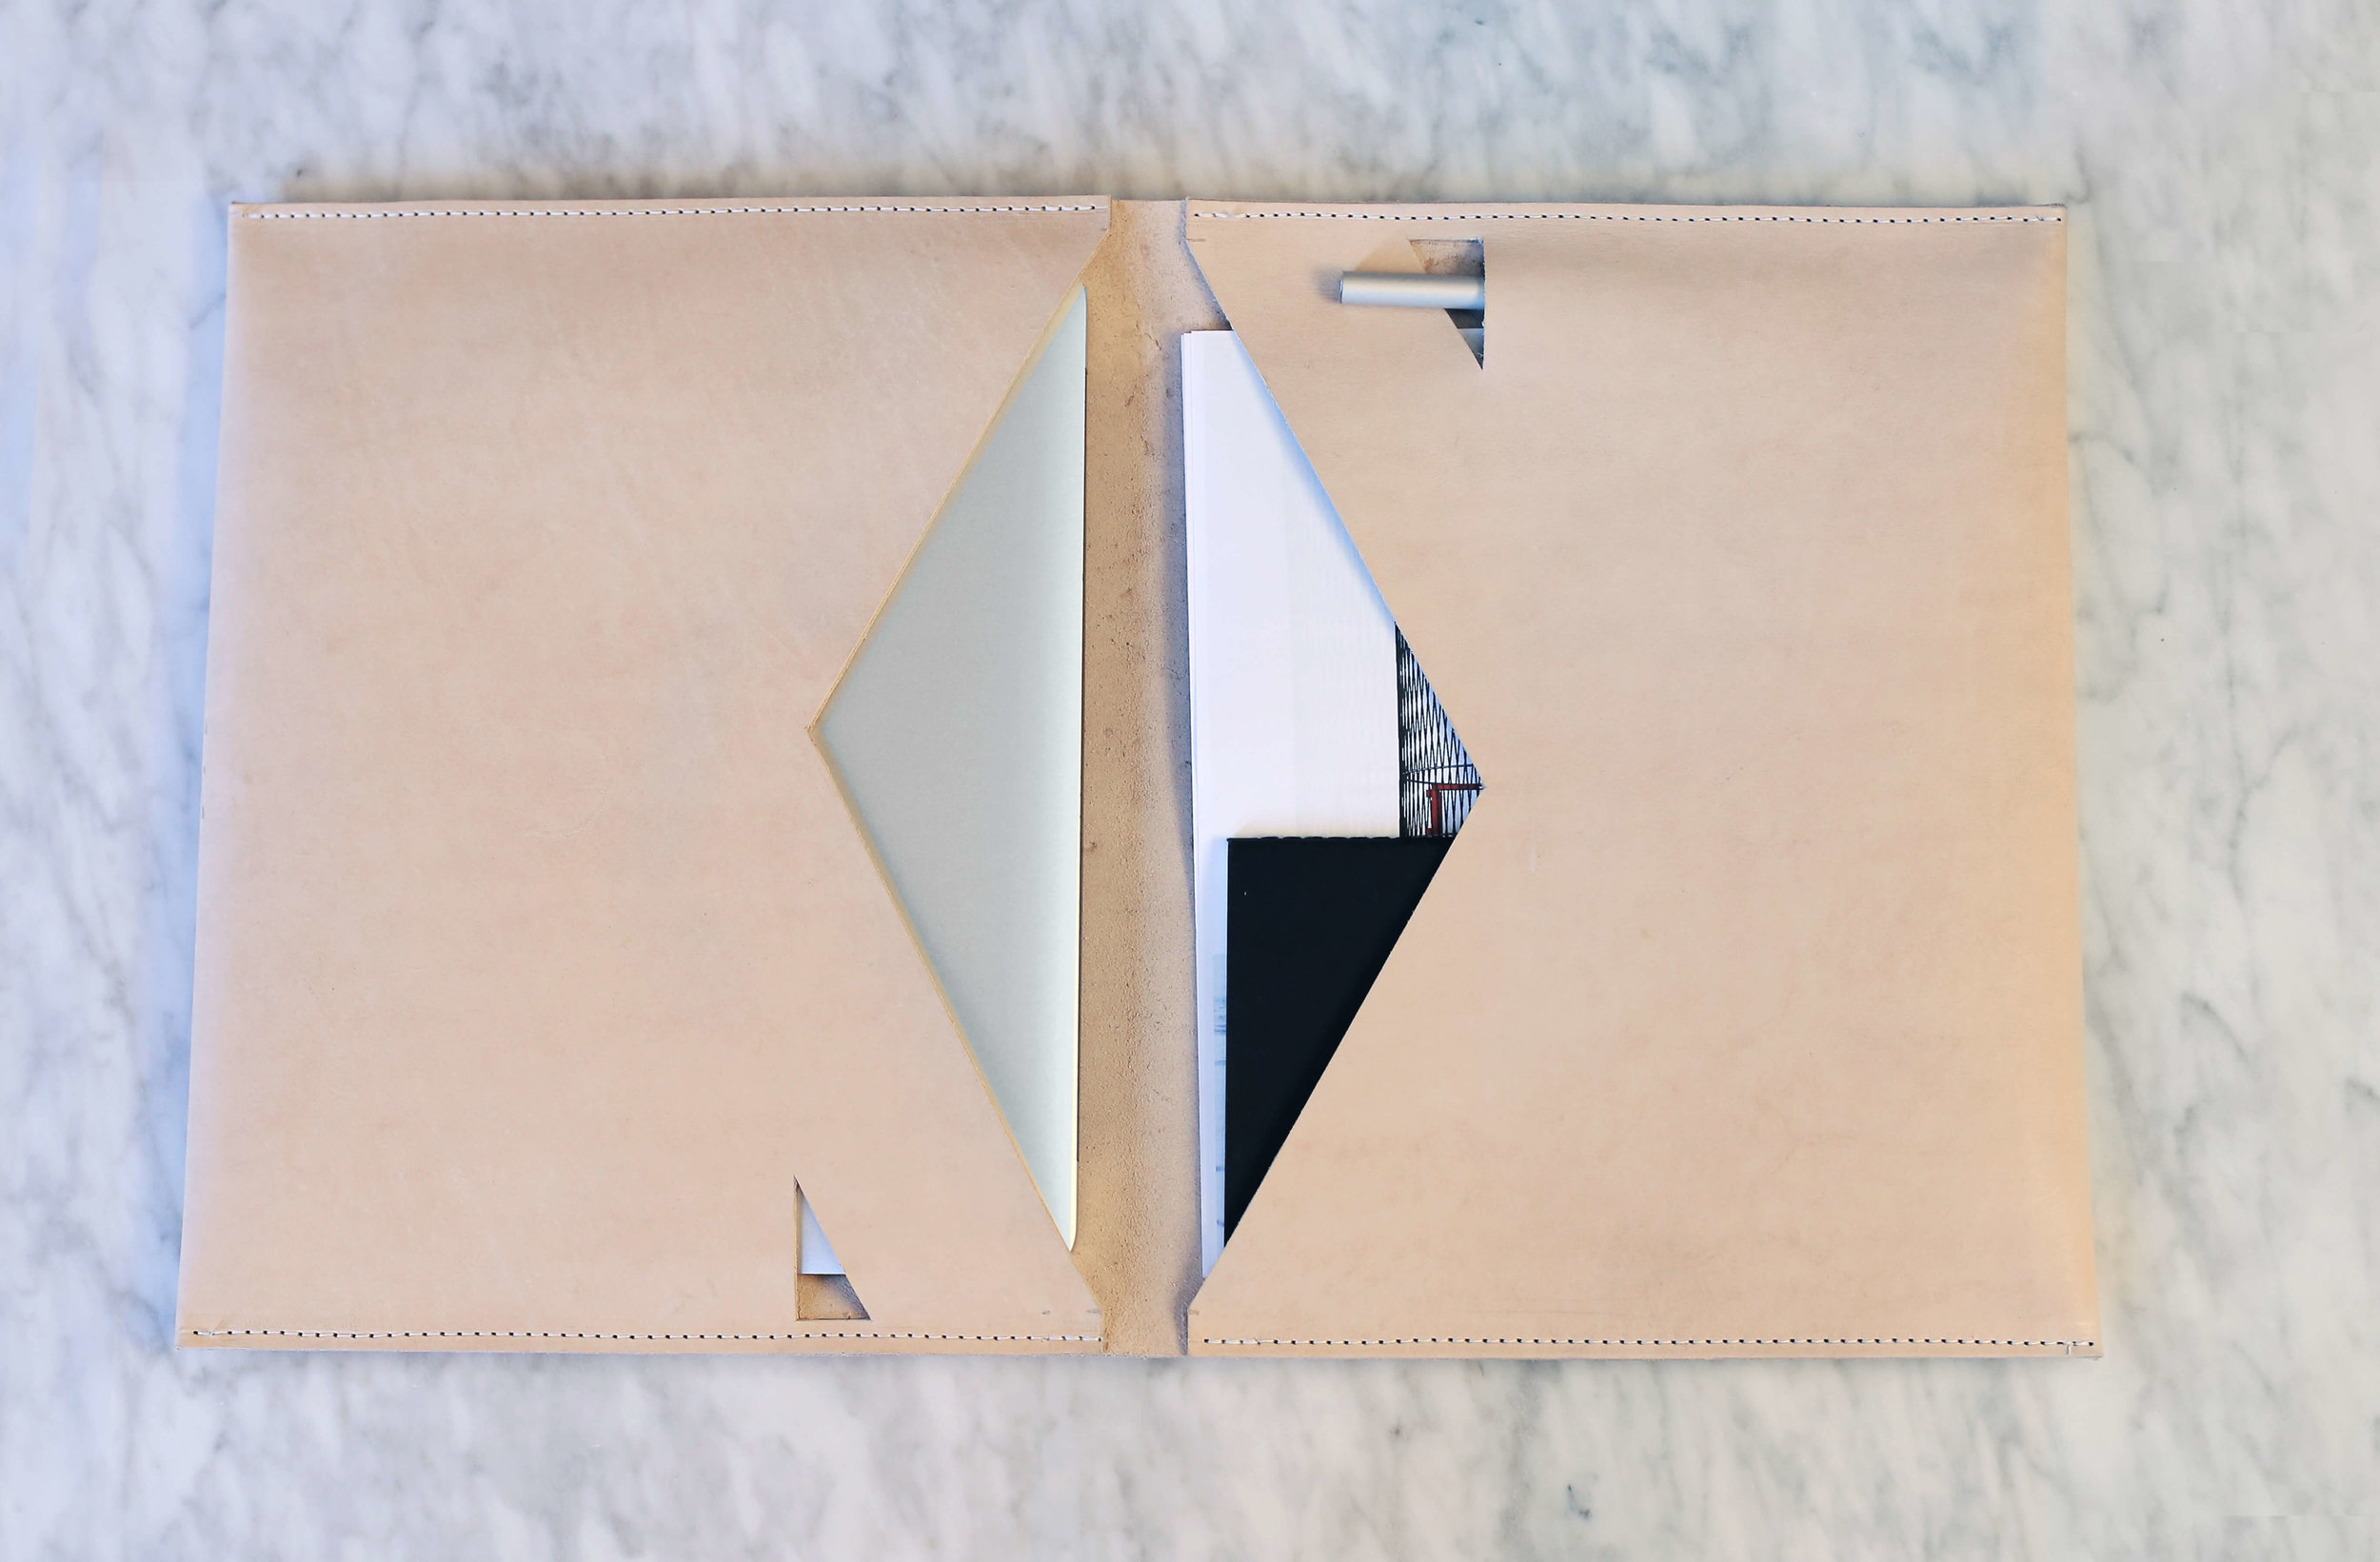 FORMAT - ADL partnered with LHOOQ to design leather iPad Pro portfolios. We designed the product in AutoCAD, worked with a local Shepard in hand making the folios and launched our line on Kickstarter.